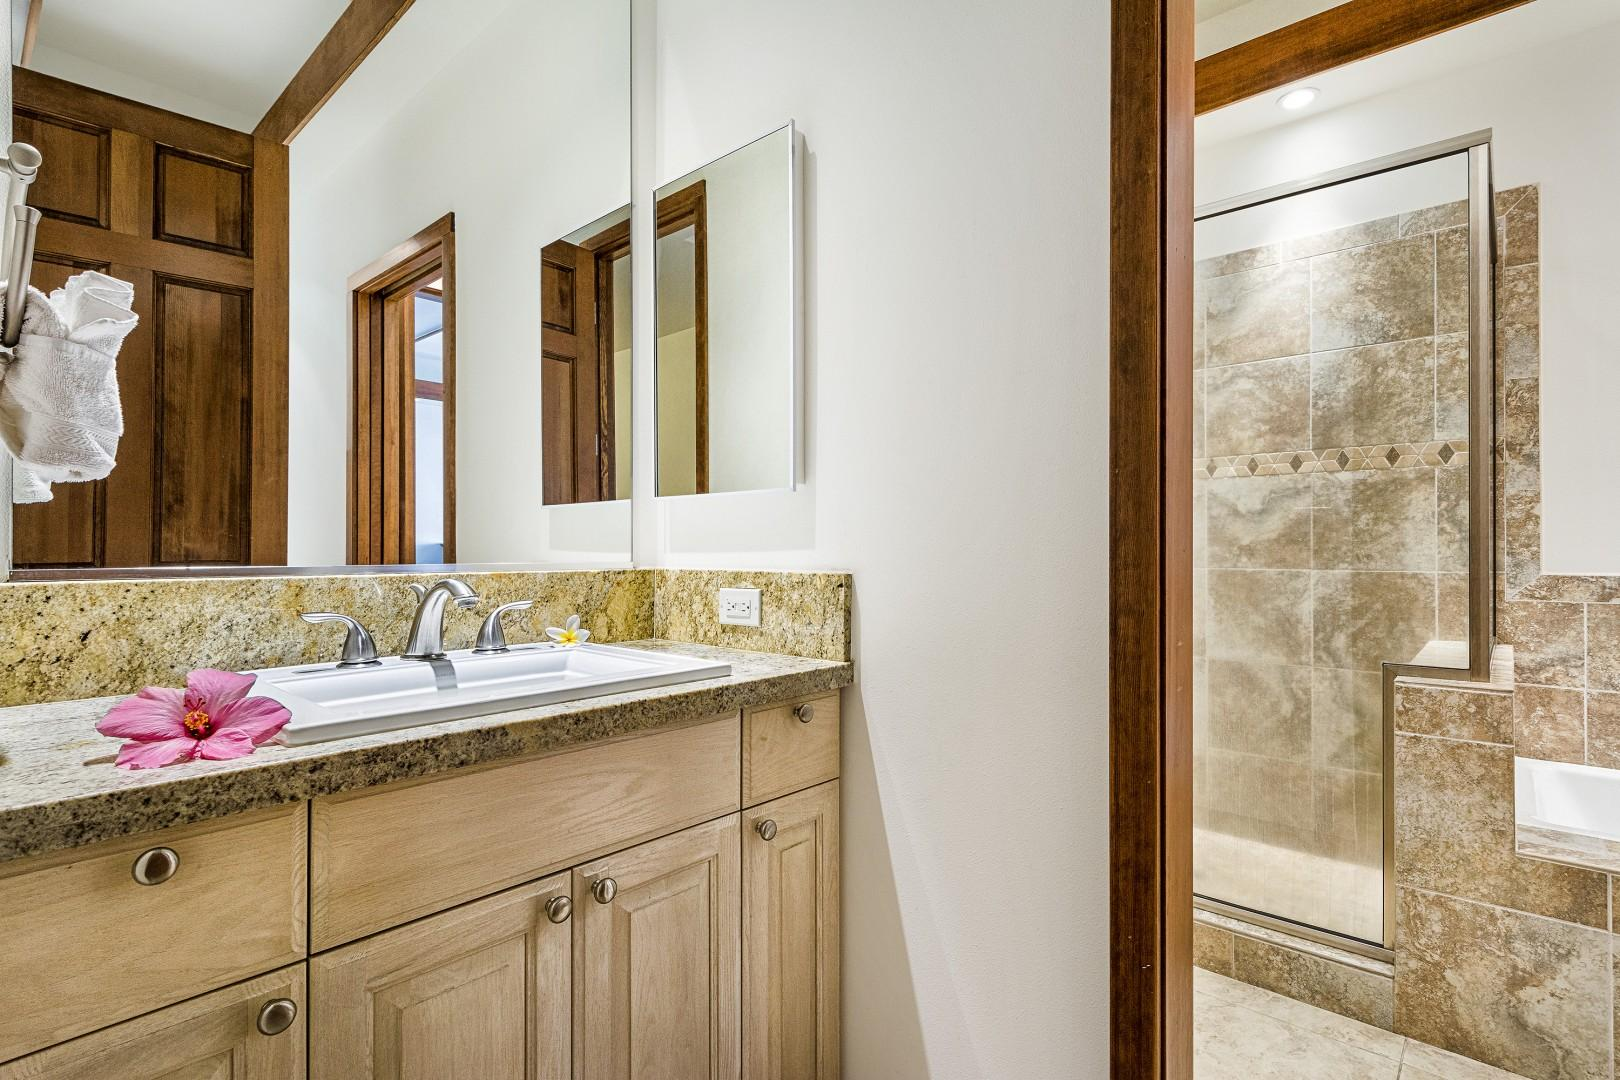 Guest bathroom with hall access